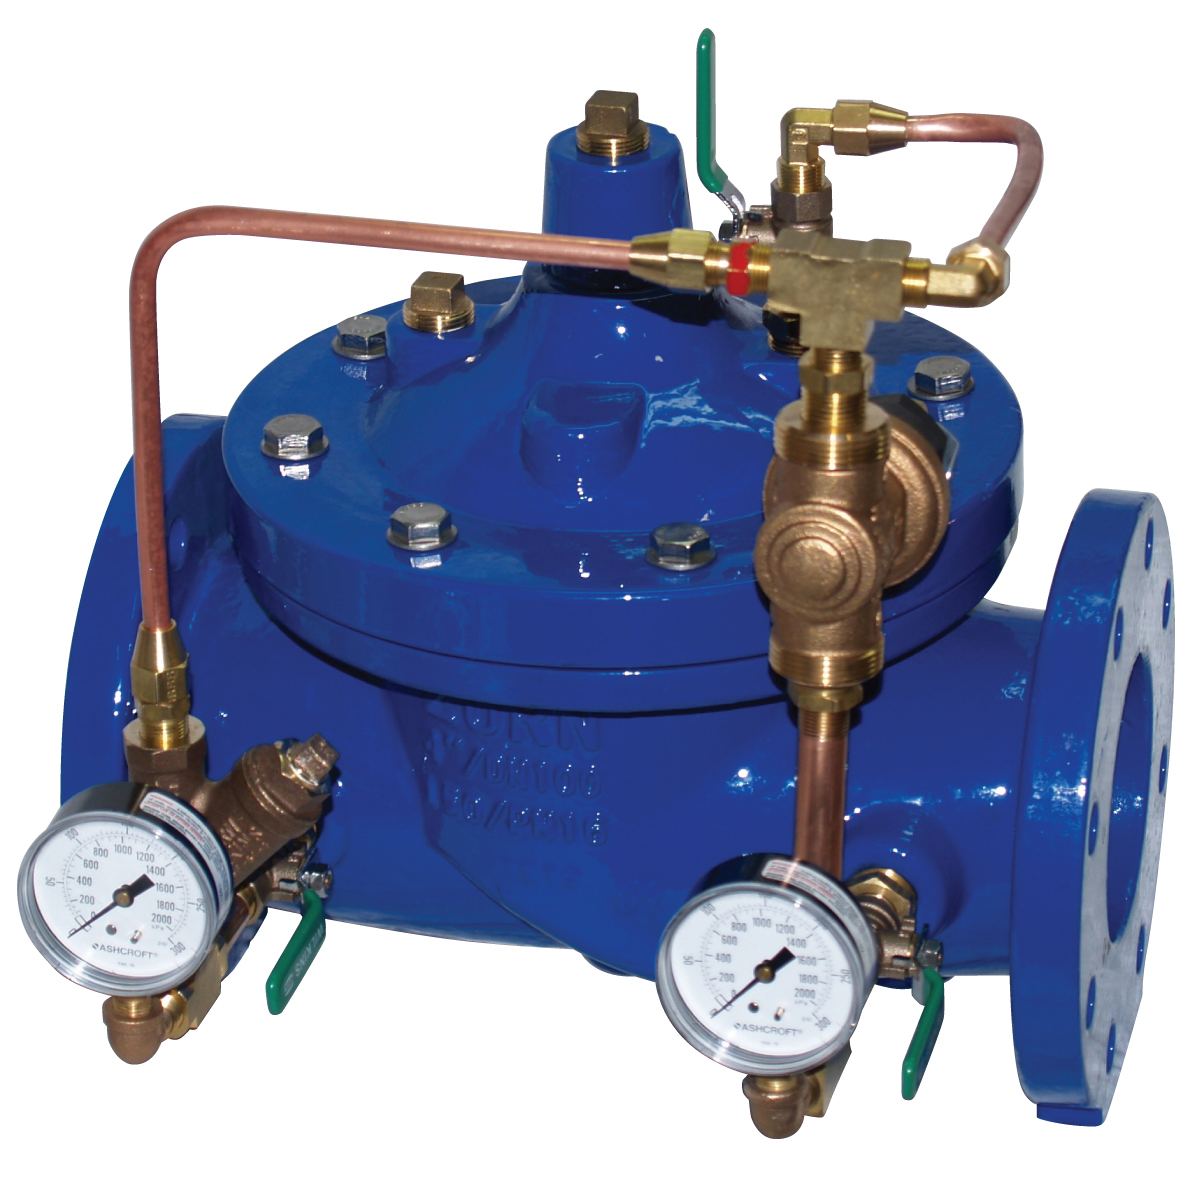 Zurn Expands its Automatic Control Valve Offering with Same